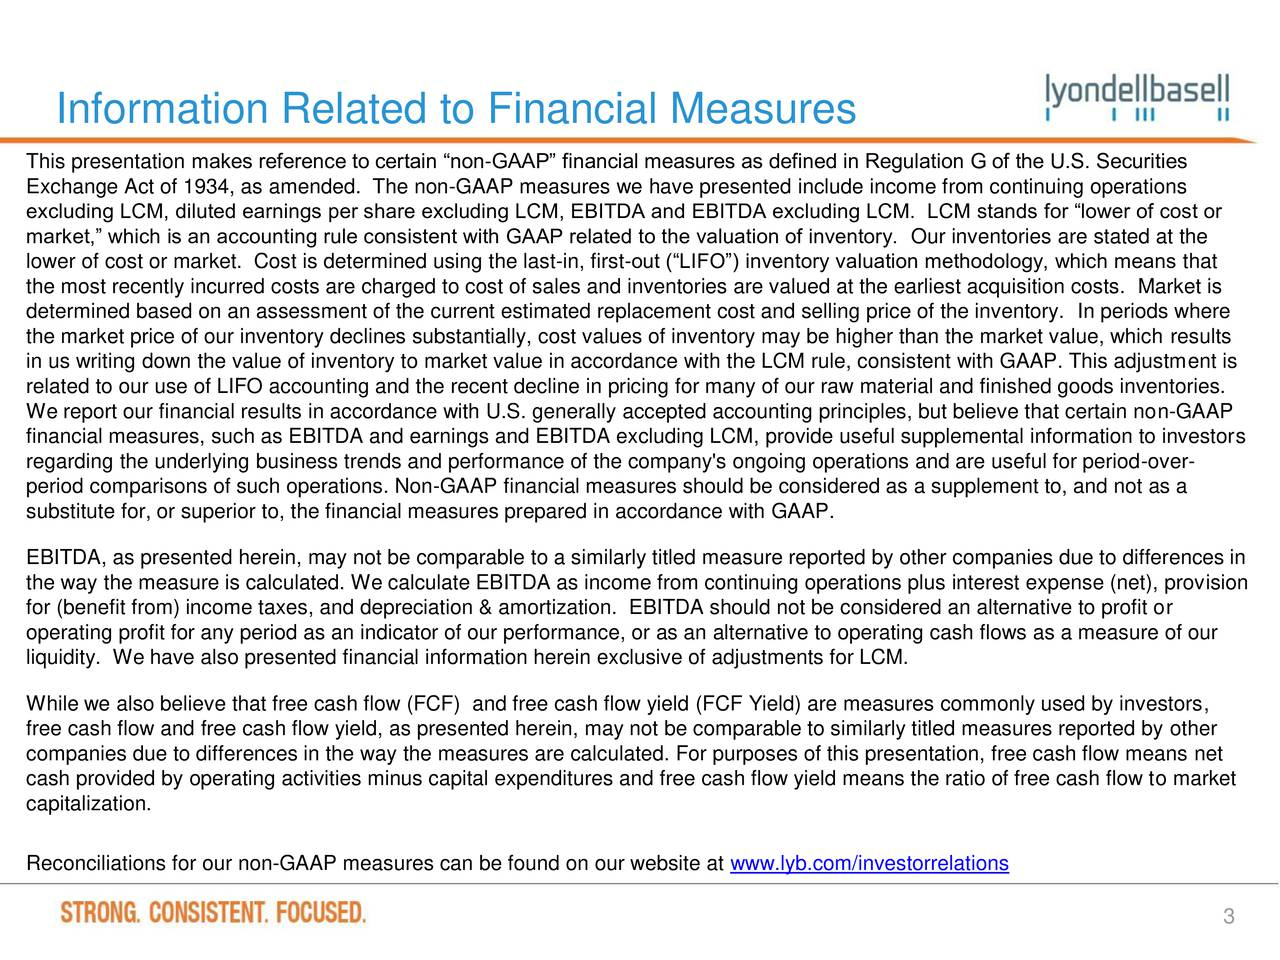 This presentation makes reference to certain non-GAAP financial measures as defined in Regulation G of the U.S. Securities Exchange Act of 1934, as amended. The non-GAAP measures we have presented include income from continuing operations excluding LCM, diluted earnings per share excluding LCM, EBITDA and EBITDA excluding LCM. LCM stands for lower of cost or market, which is an accounting rule consistent with GAAP related to the valuation of inventory. Our inventories are stated at the lower of cost or market. Cost is determined using the last-in, first-out (LIFO) inventory valuation methodology, which means that the most recently incurred costs are charged to cost of sales and inventories are valued at the earliest acquisition costs. Market is determined based on an assessment of the current estimated replacement cost and selling price of the inventory. In periods where the market price of our inventory declines substantially, cost values of inventory may be higher than the market value, which results in us writing down the value of inventory to market value in accordance with the LCM rule, consistent with GAAP. This adjustment is related to our use of LIFO accounting and the recent decline in pricing for many of our raw material and finished goods inventories. We report our financial results in accordance with U.S. generally accepted accounting principles, but believe that certain non-GAAP financial measures, such as EBITDA and earnings and EBITDA excluding LCM, provide useful supplemental information to investors regarding the underlying business trends and performance of the company's ongoing operations and are useful for period-over- period comparisons of such operations. Non-GAAP financial measures should be considered as a supplement to, and not as a substitute for, or superior to, the financial measures prepared in accordance with GAAP. EBITDA, as presented herein, may not be comparable to a similarly titled measure reported by other companies due to differe